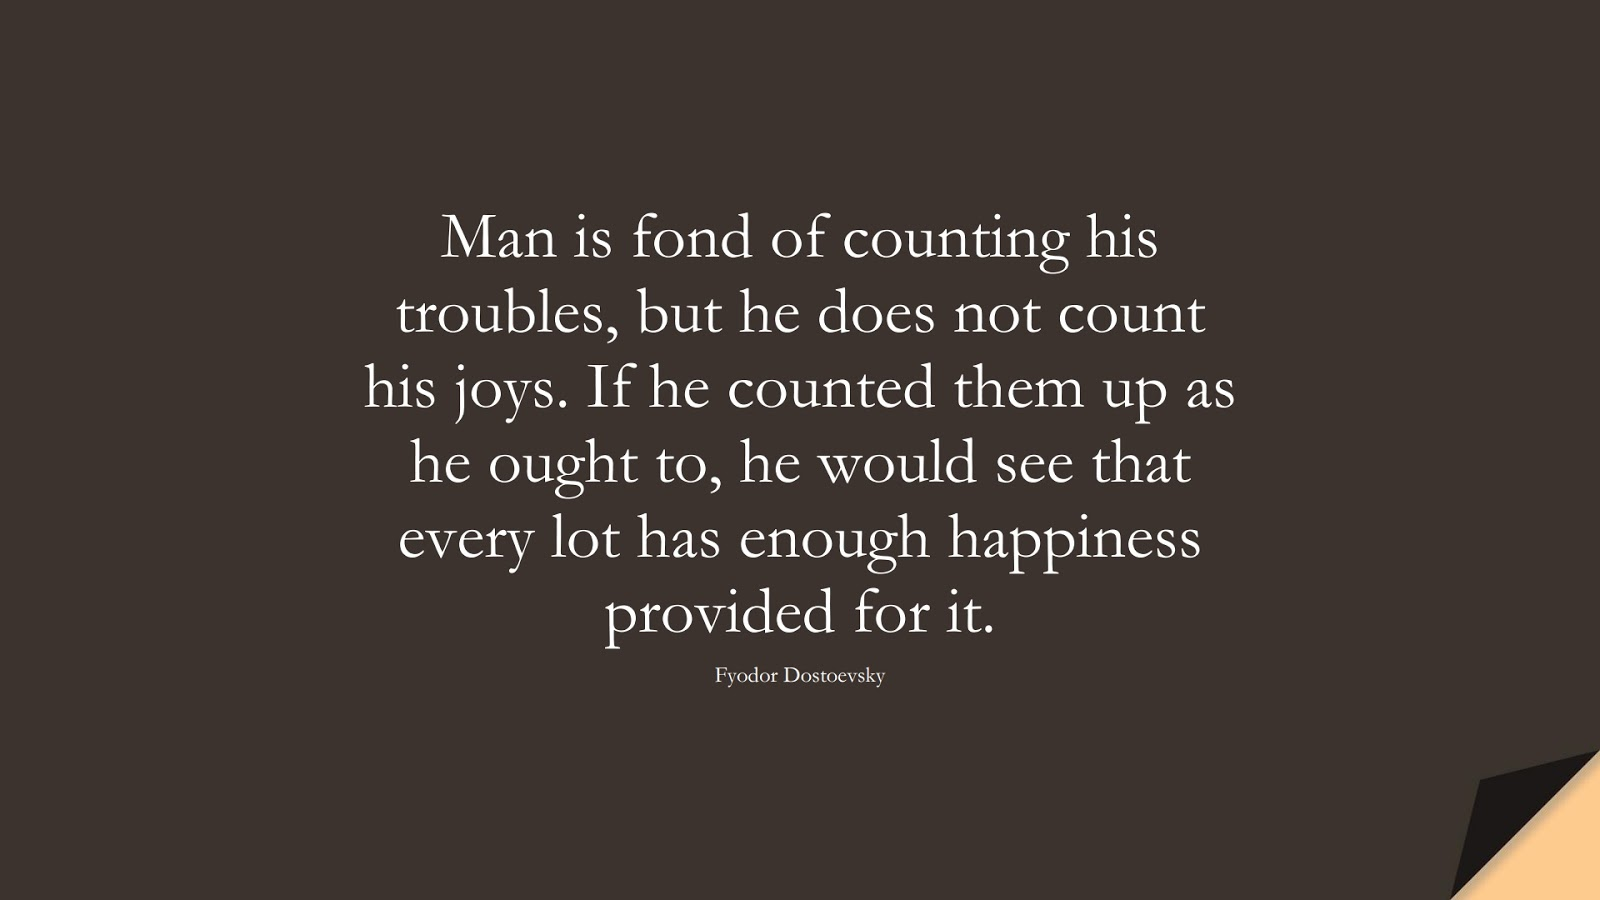 Man is fond of counting his troubles, but he does not count his joys. If he counted them up as he ought to, he would see that every lot has enough happiness provided for it. (Fyodor Dostoevsky);  #HappinessQuotes